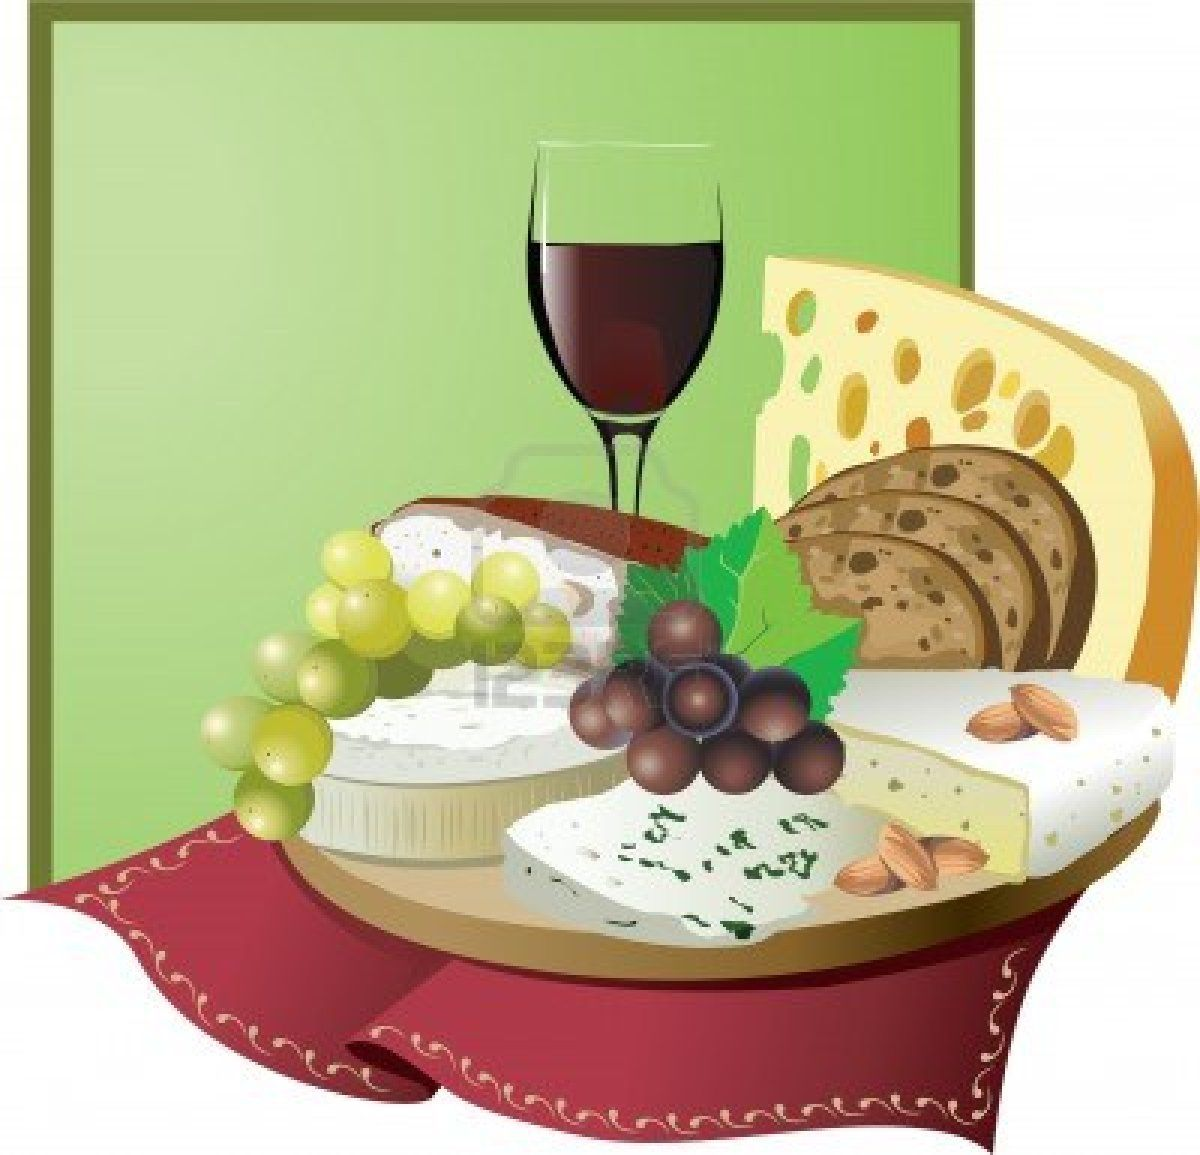 Still life with wine, grapes and cheese.